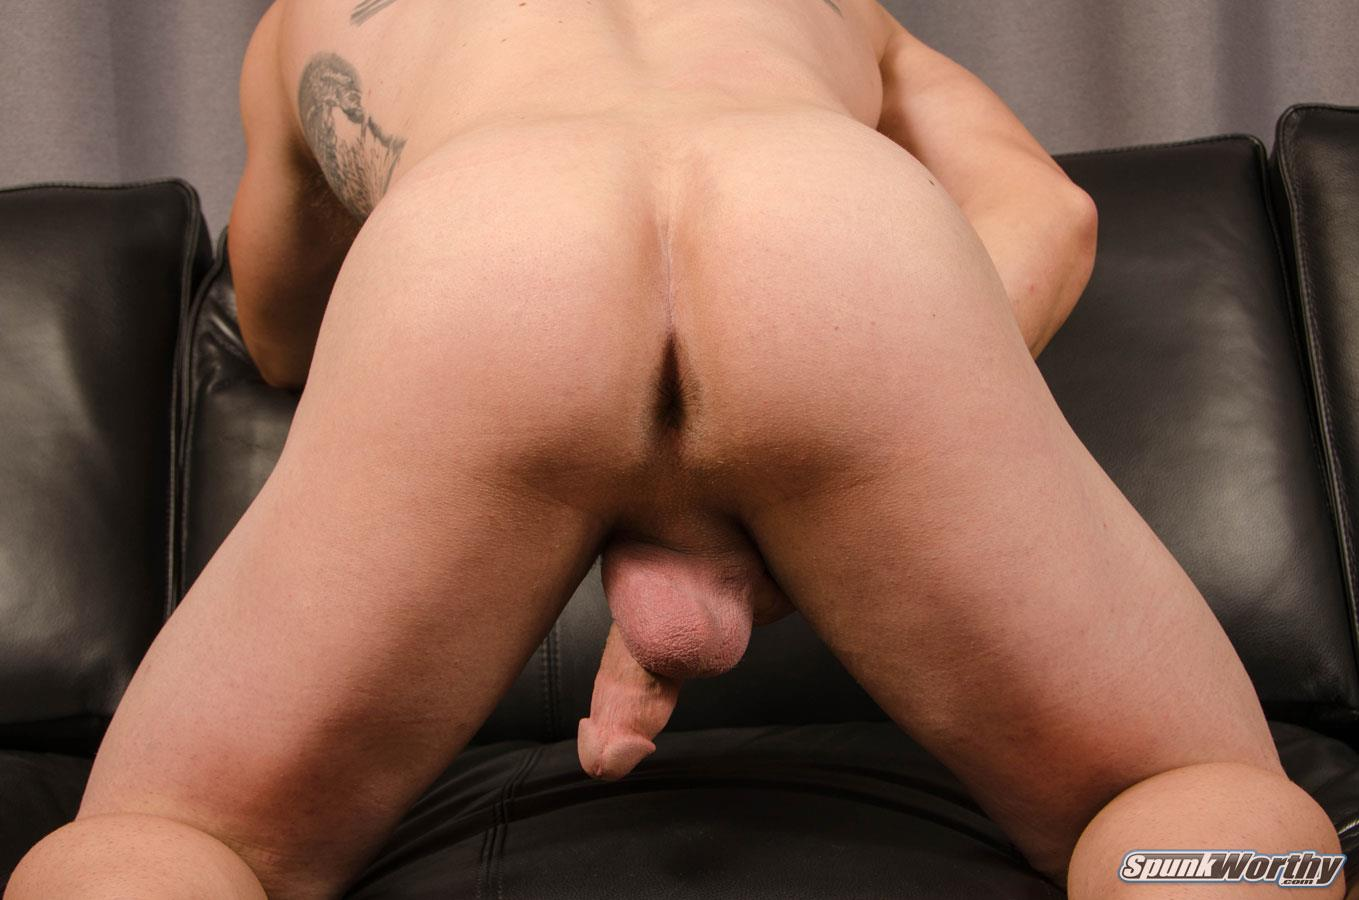 SpunkWorthy-Avery-Straight-Army-Soldier-Jerking-Off-Big-Cock-Amateur-Gay-Porn-13 Married Straight Muscular Army Soldier Jerking Off For Cash